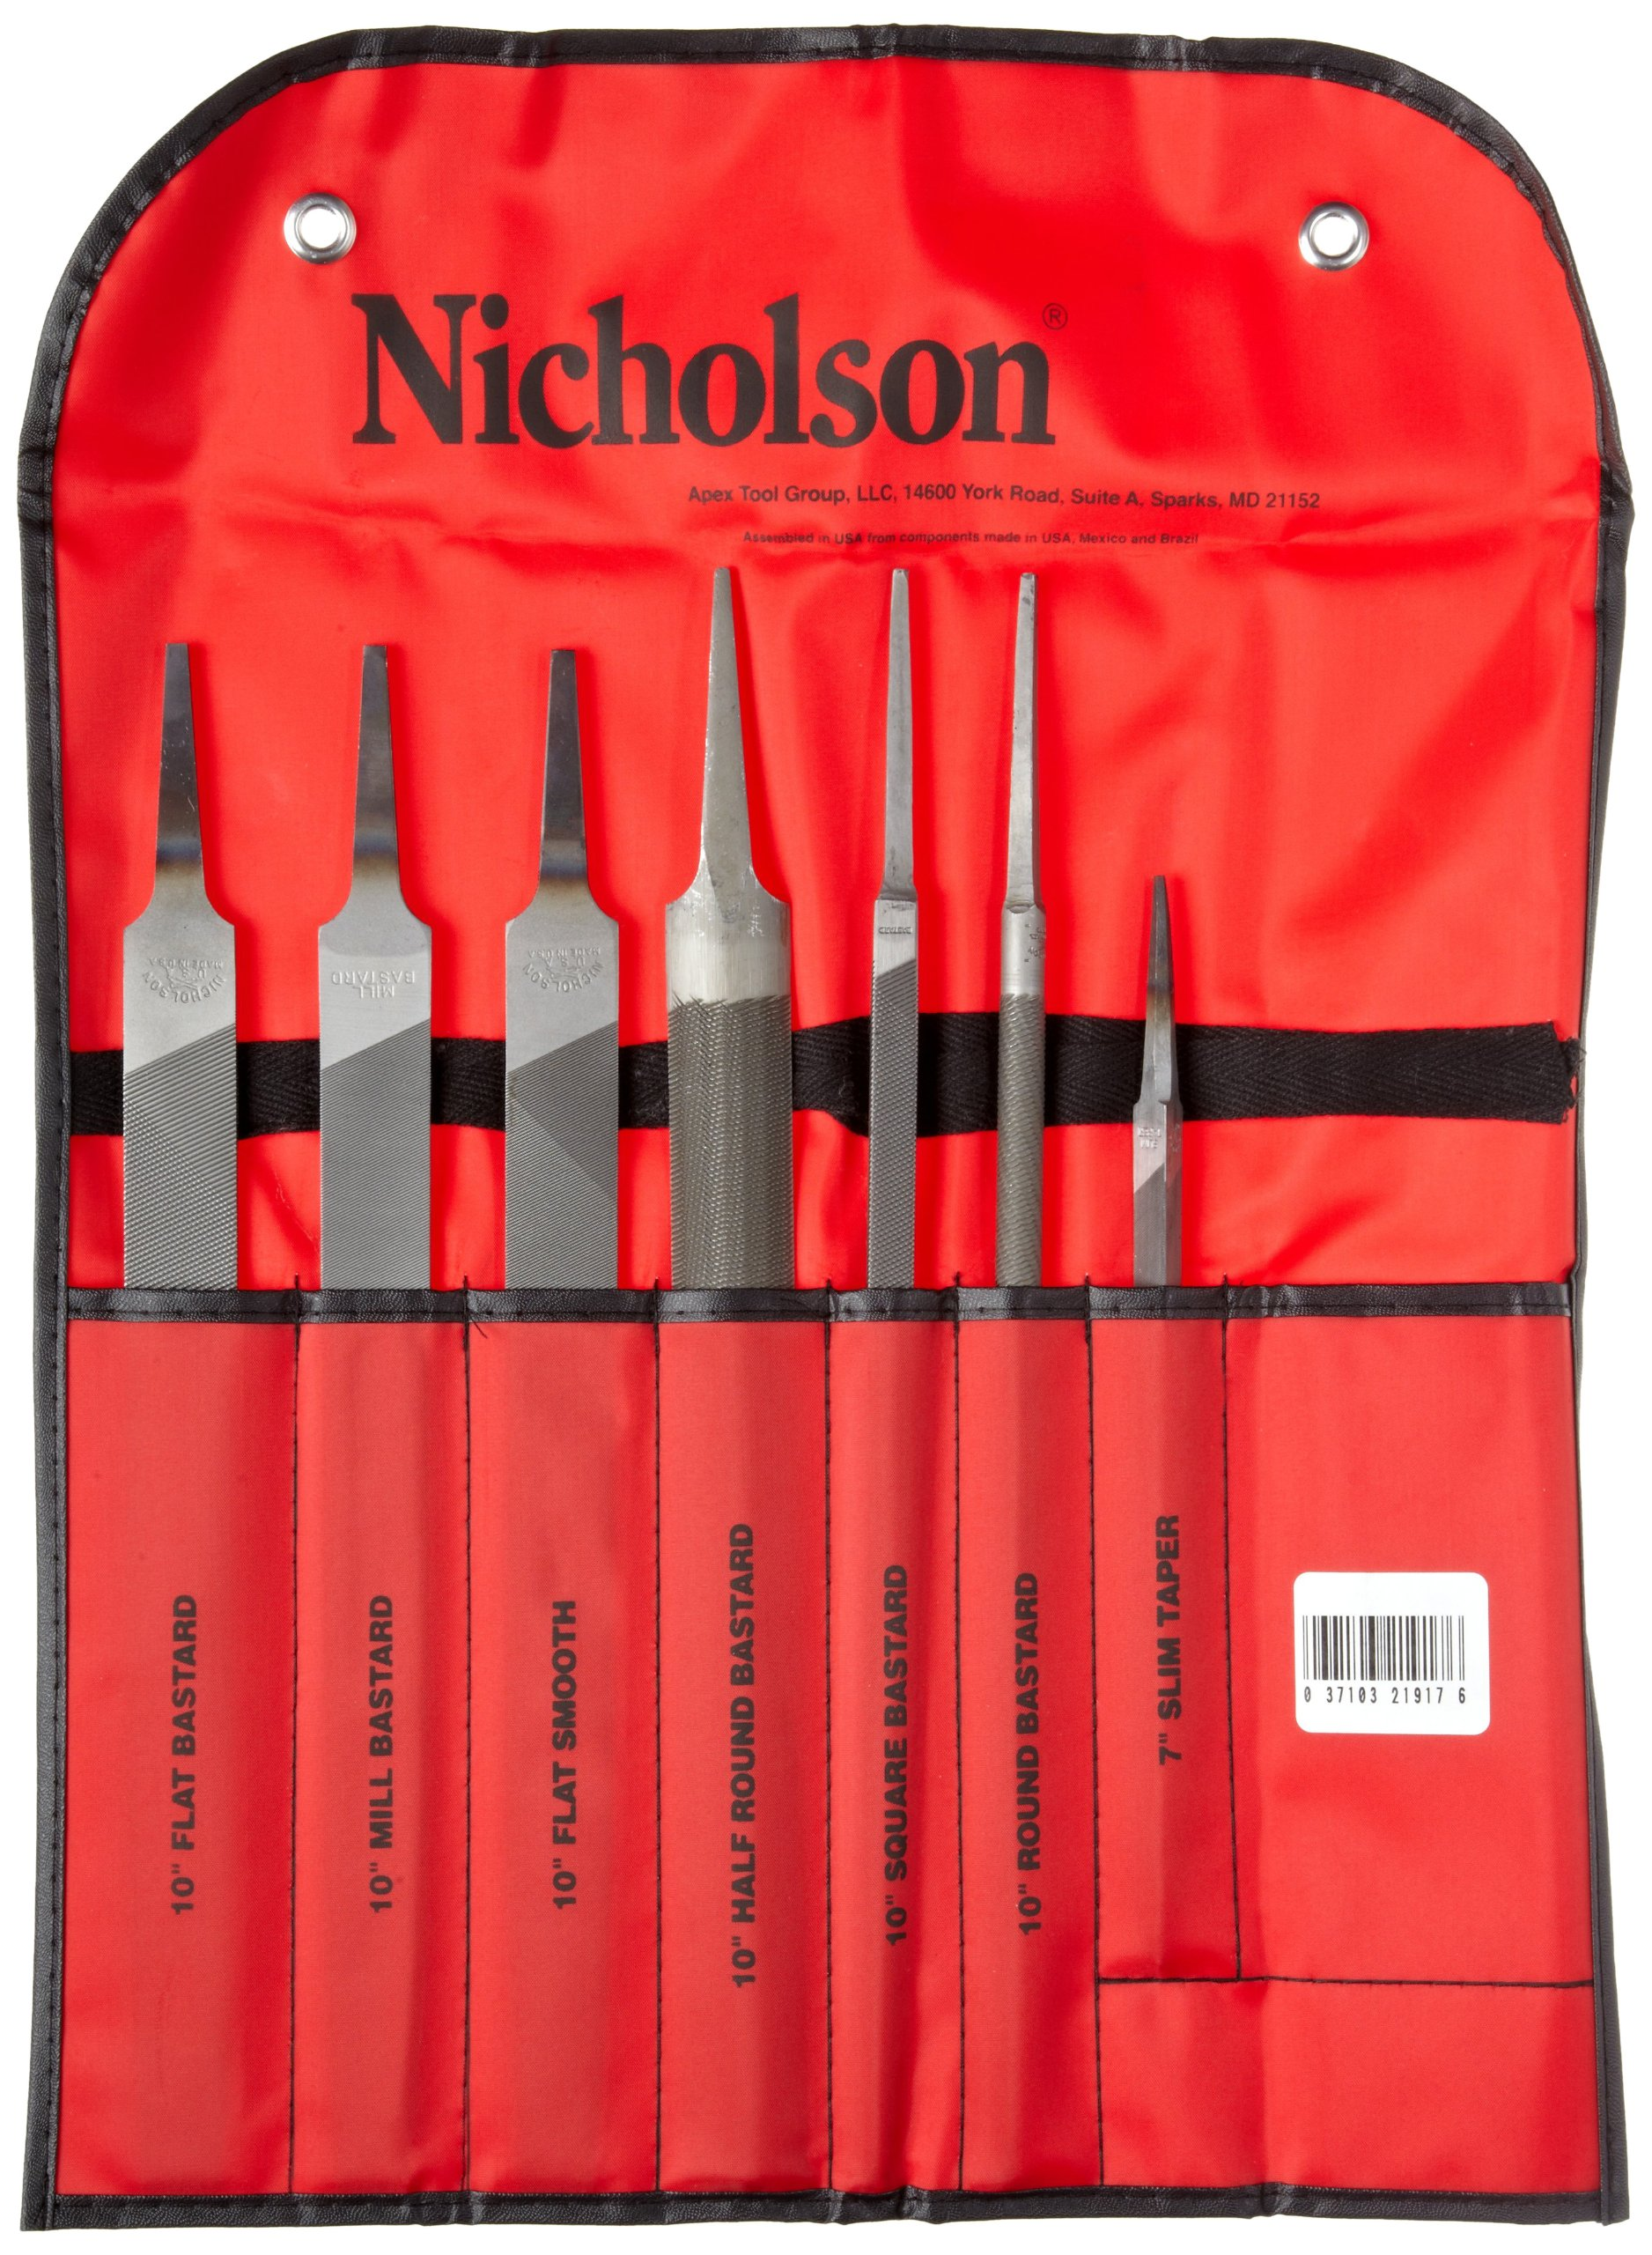 Nicholson 7 Piece Machinist Hand File Set, American Pattern, 6'' Length by Apex Tool Group (Image #2)